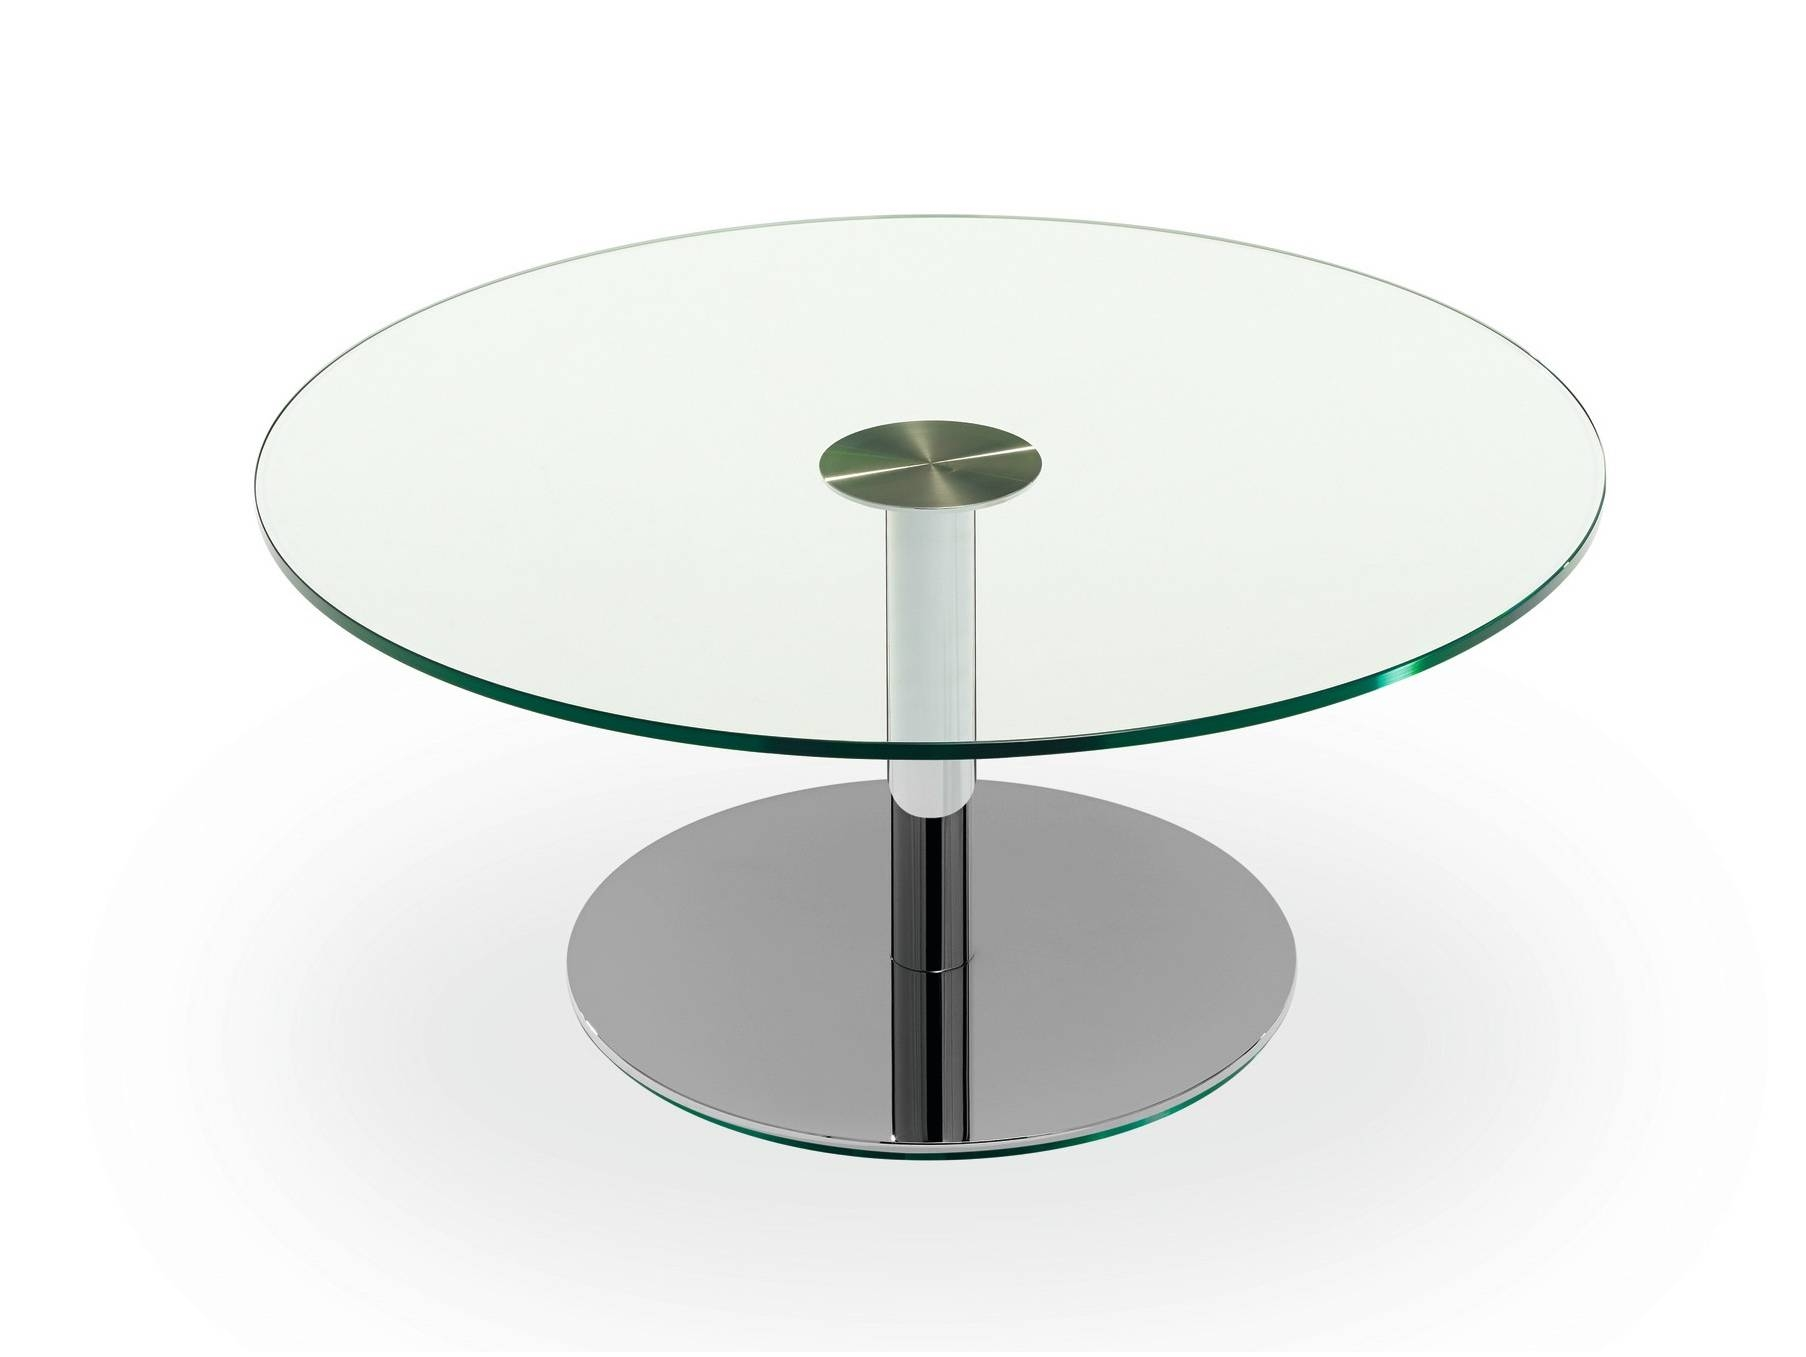 Small Round Glass Top Coffee Table Cocinacentralco - Jericho regarding Glass Circular Coffee Tables (Image 31 of 31)